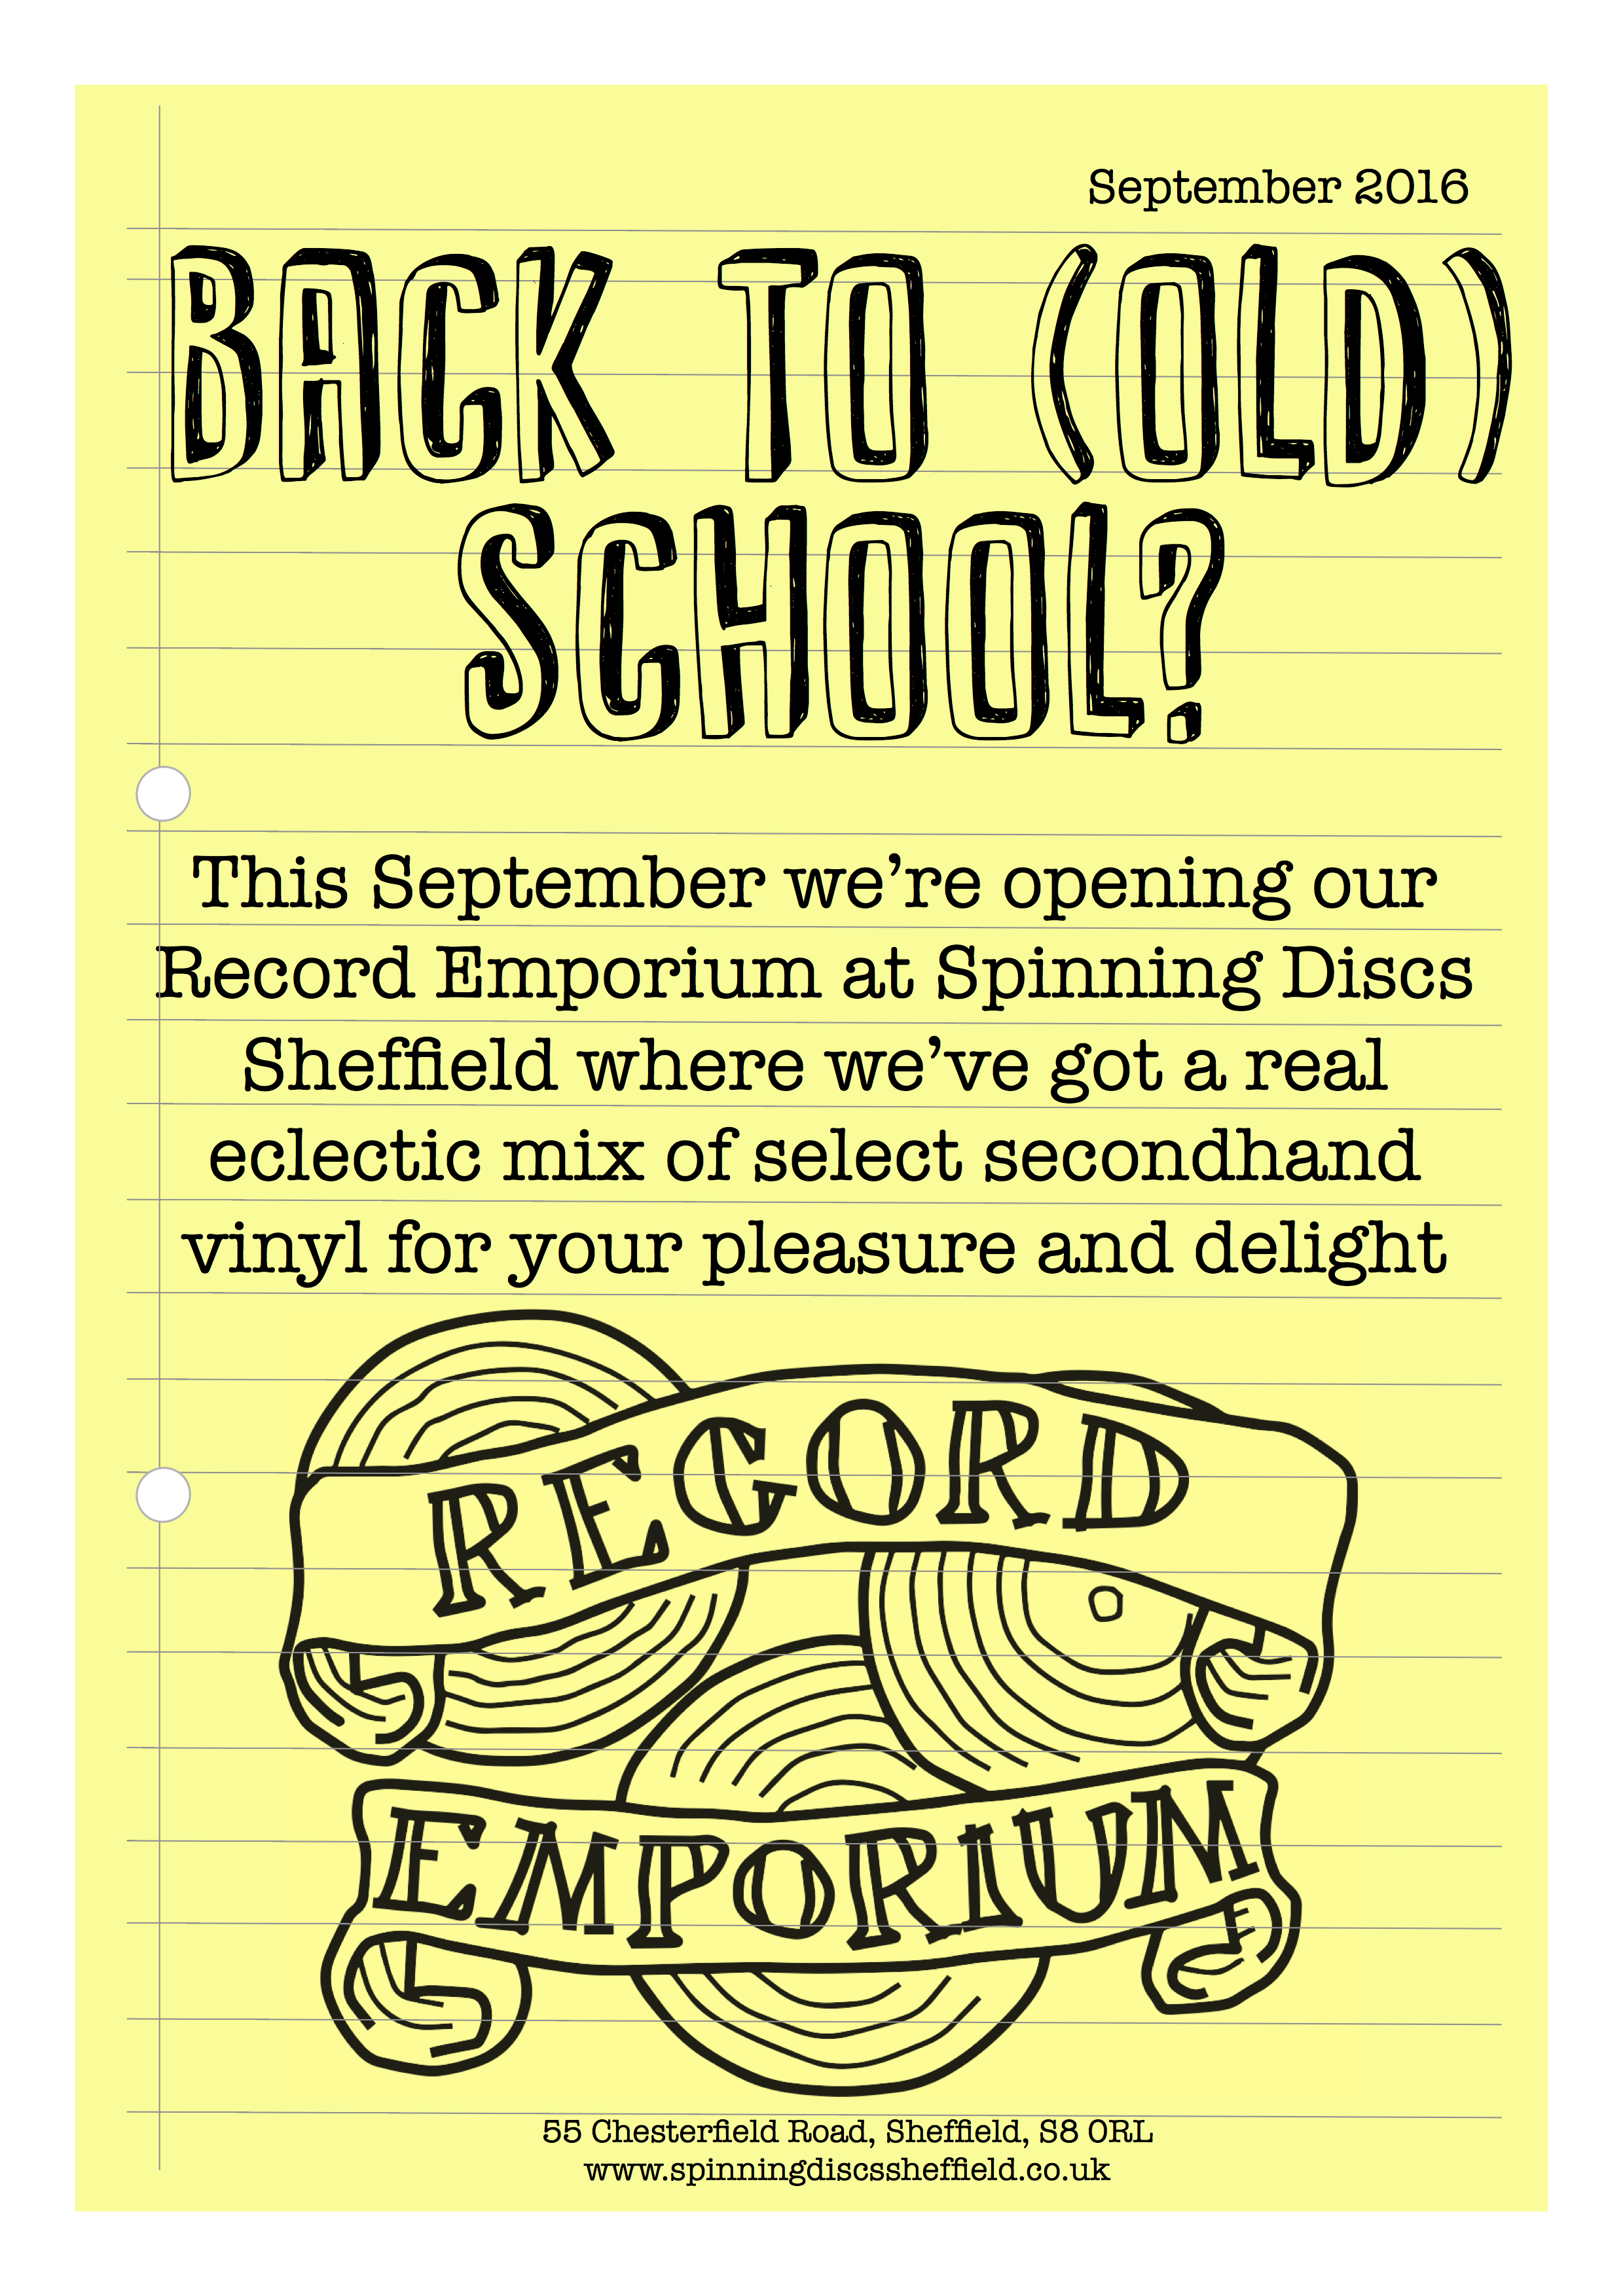 Record Emporium - Back to (Old) School?